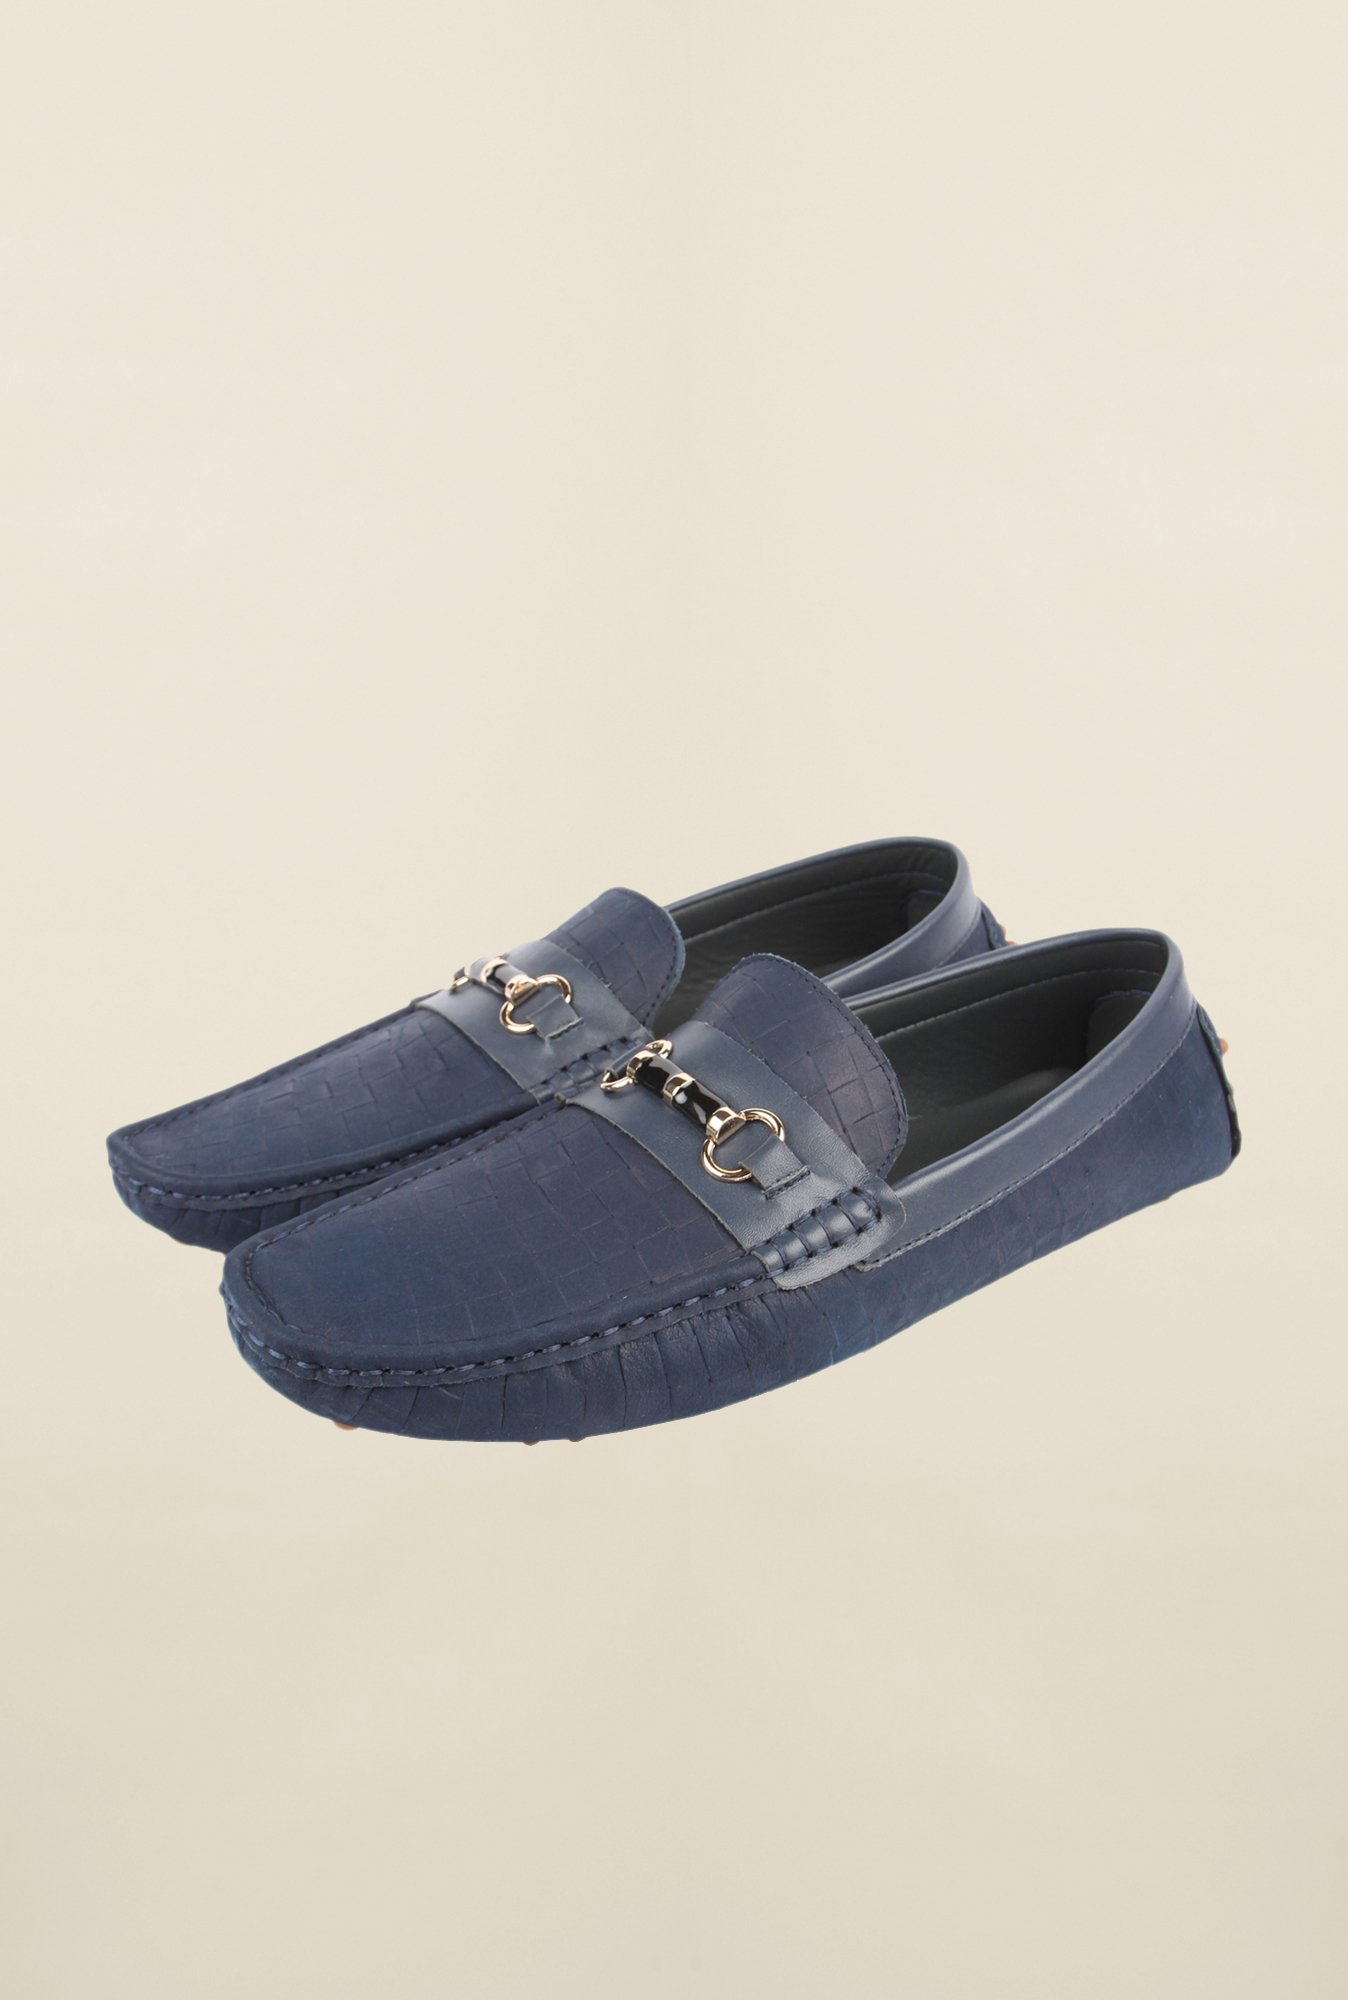 Cobblerz Blue Leather Moccasins